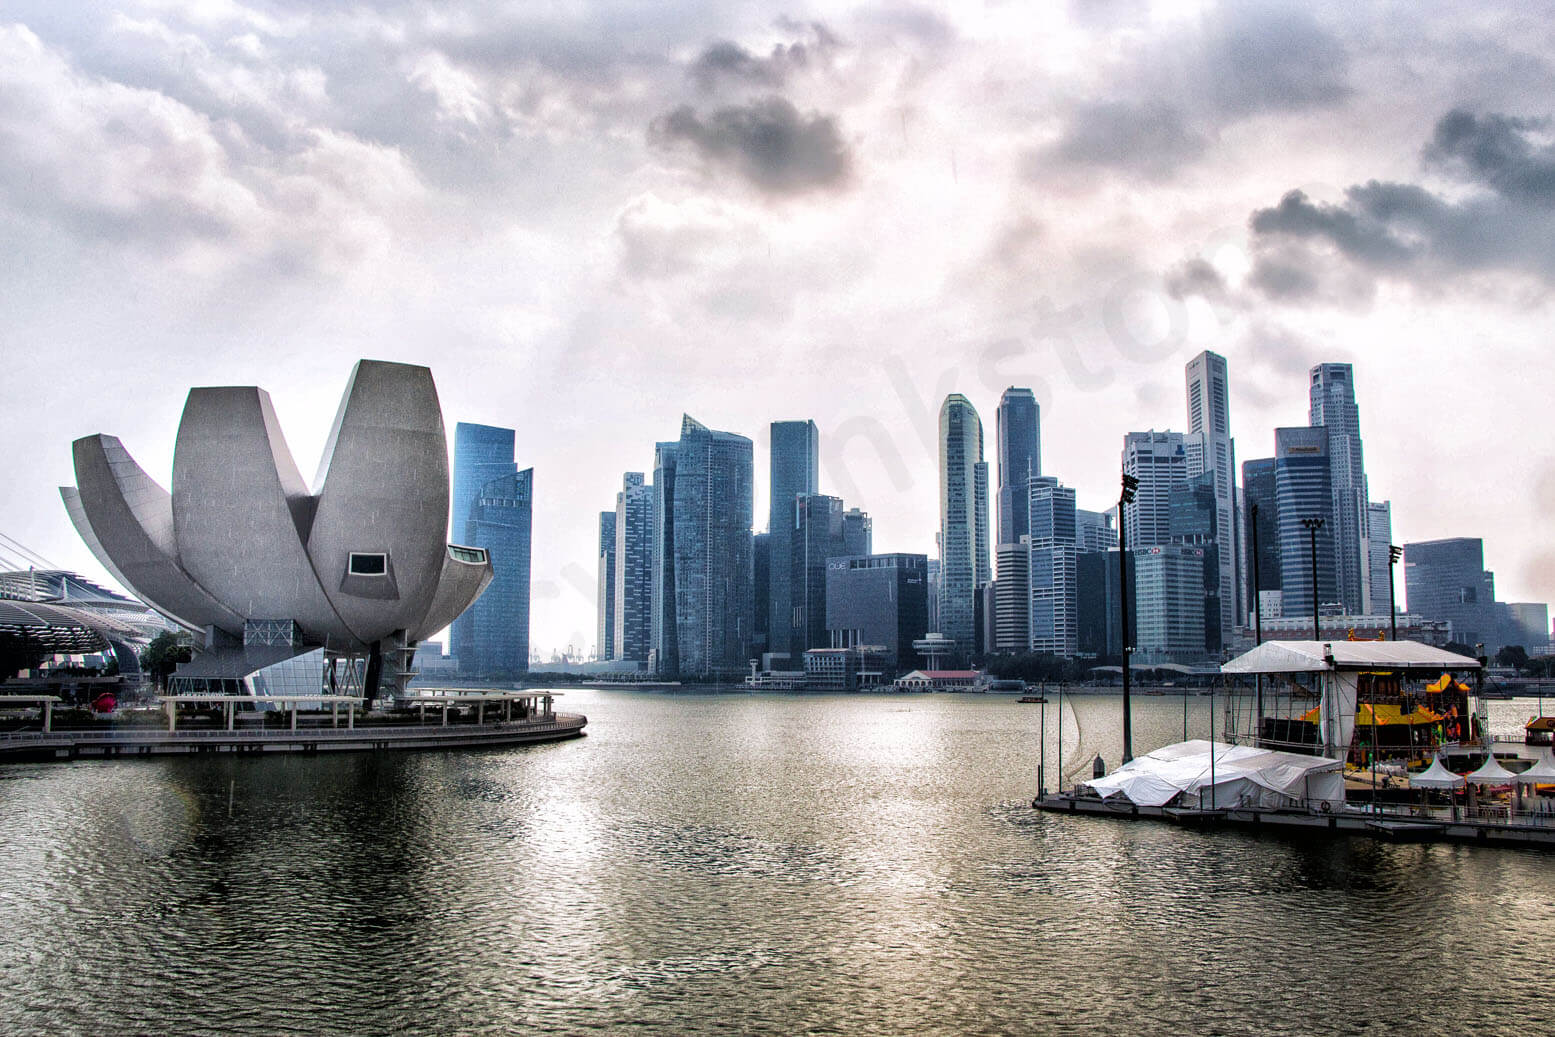 Travel in Singapore: Marina Bay after a storm